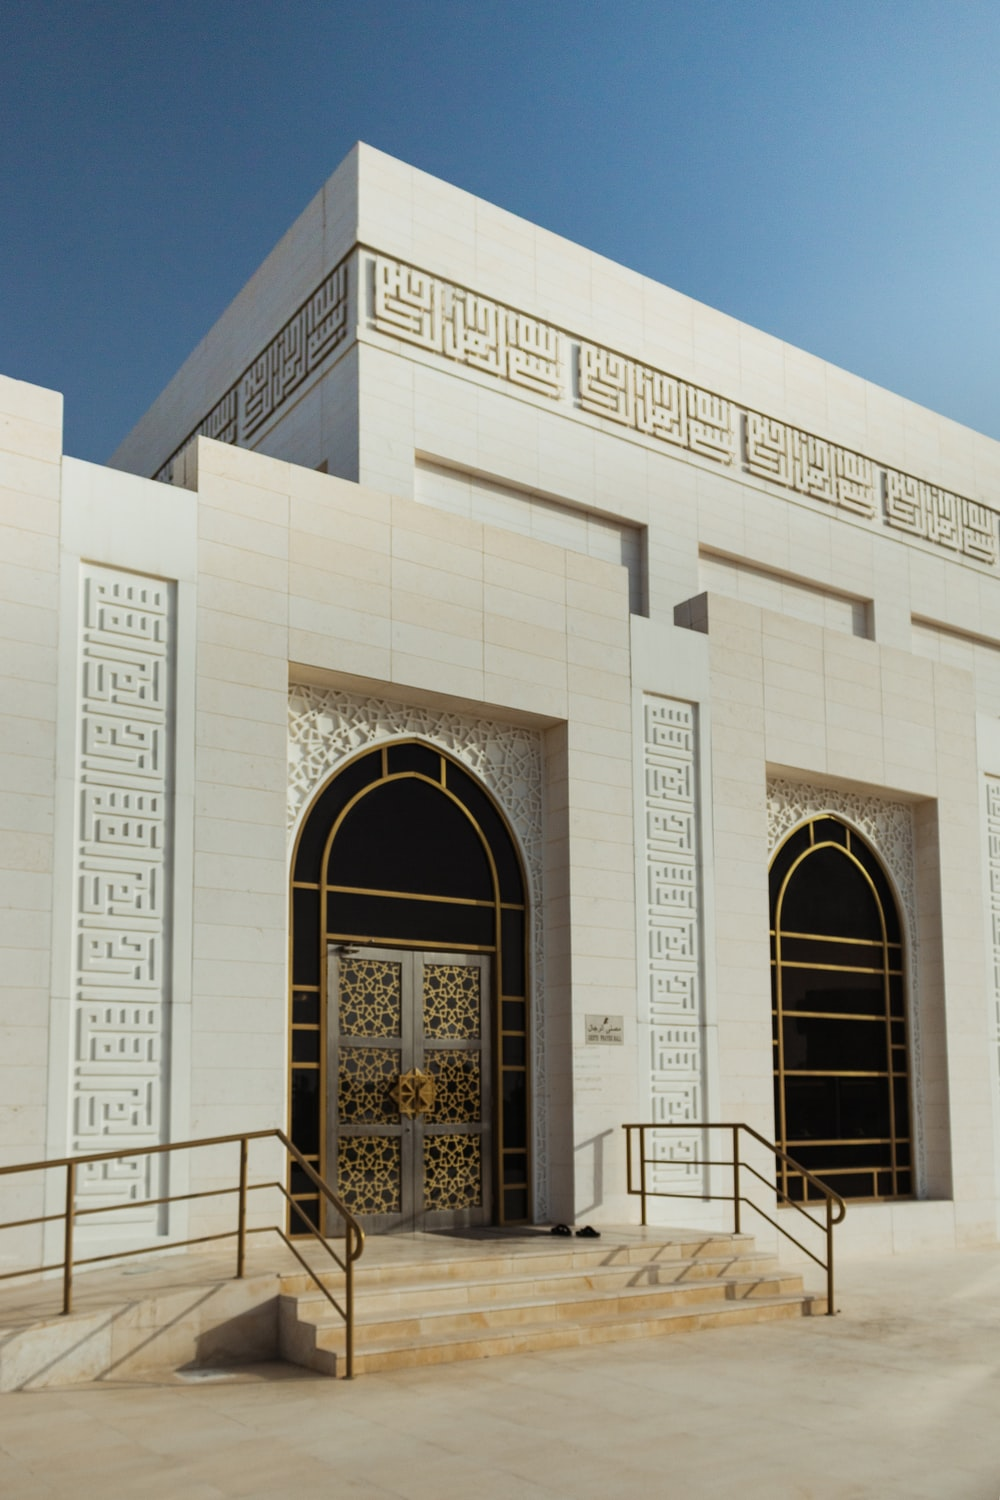 white concrete building with arch doors